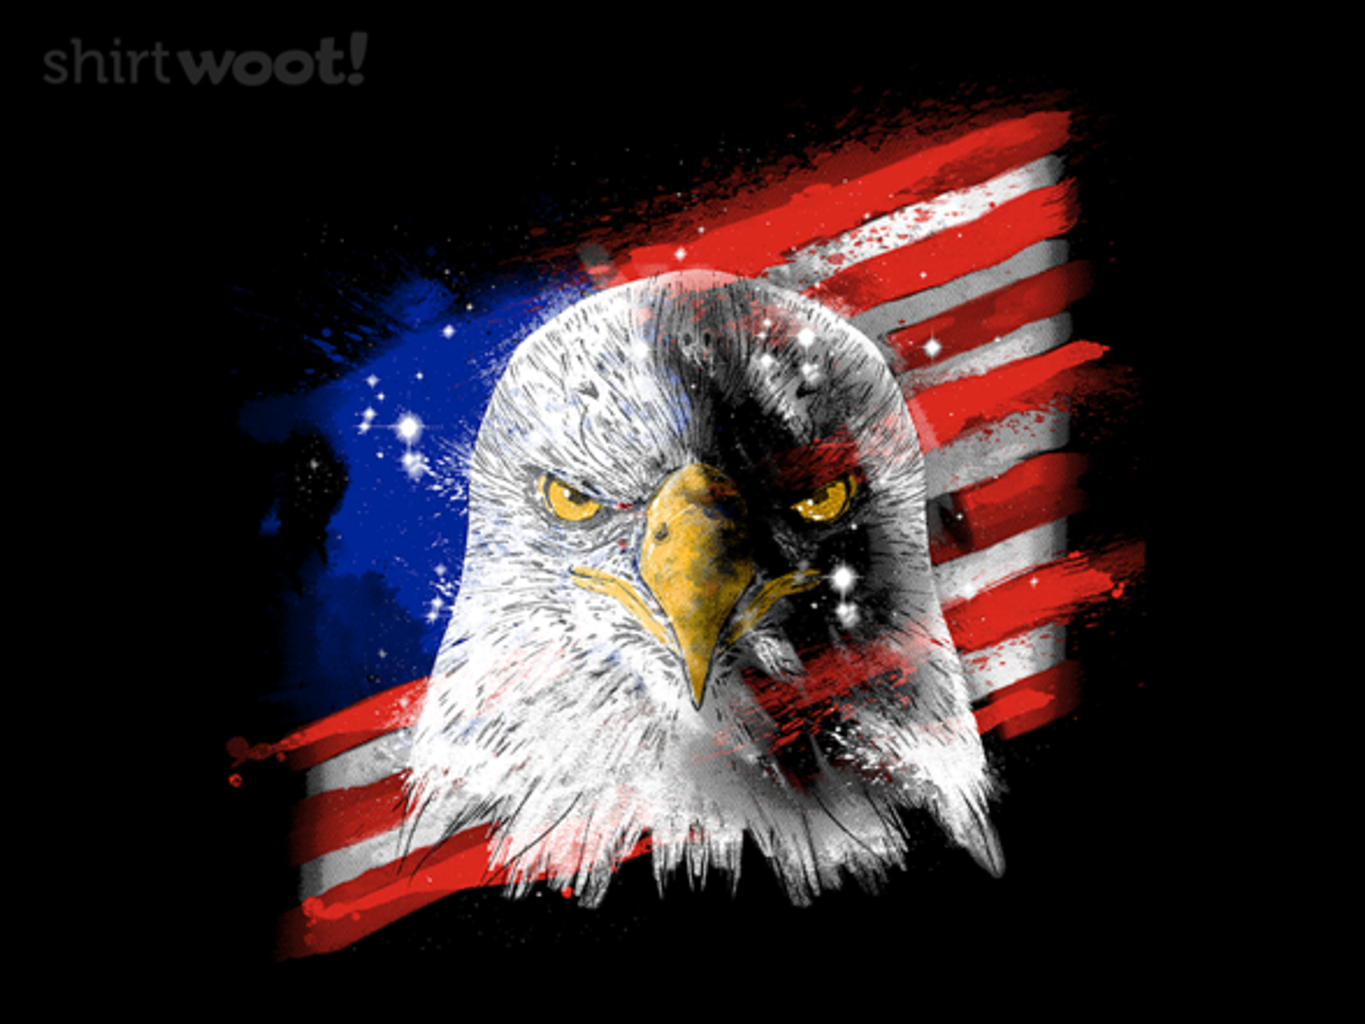 Woot!: The Eagle